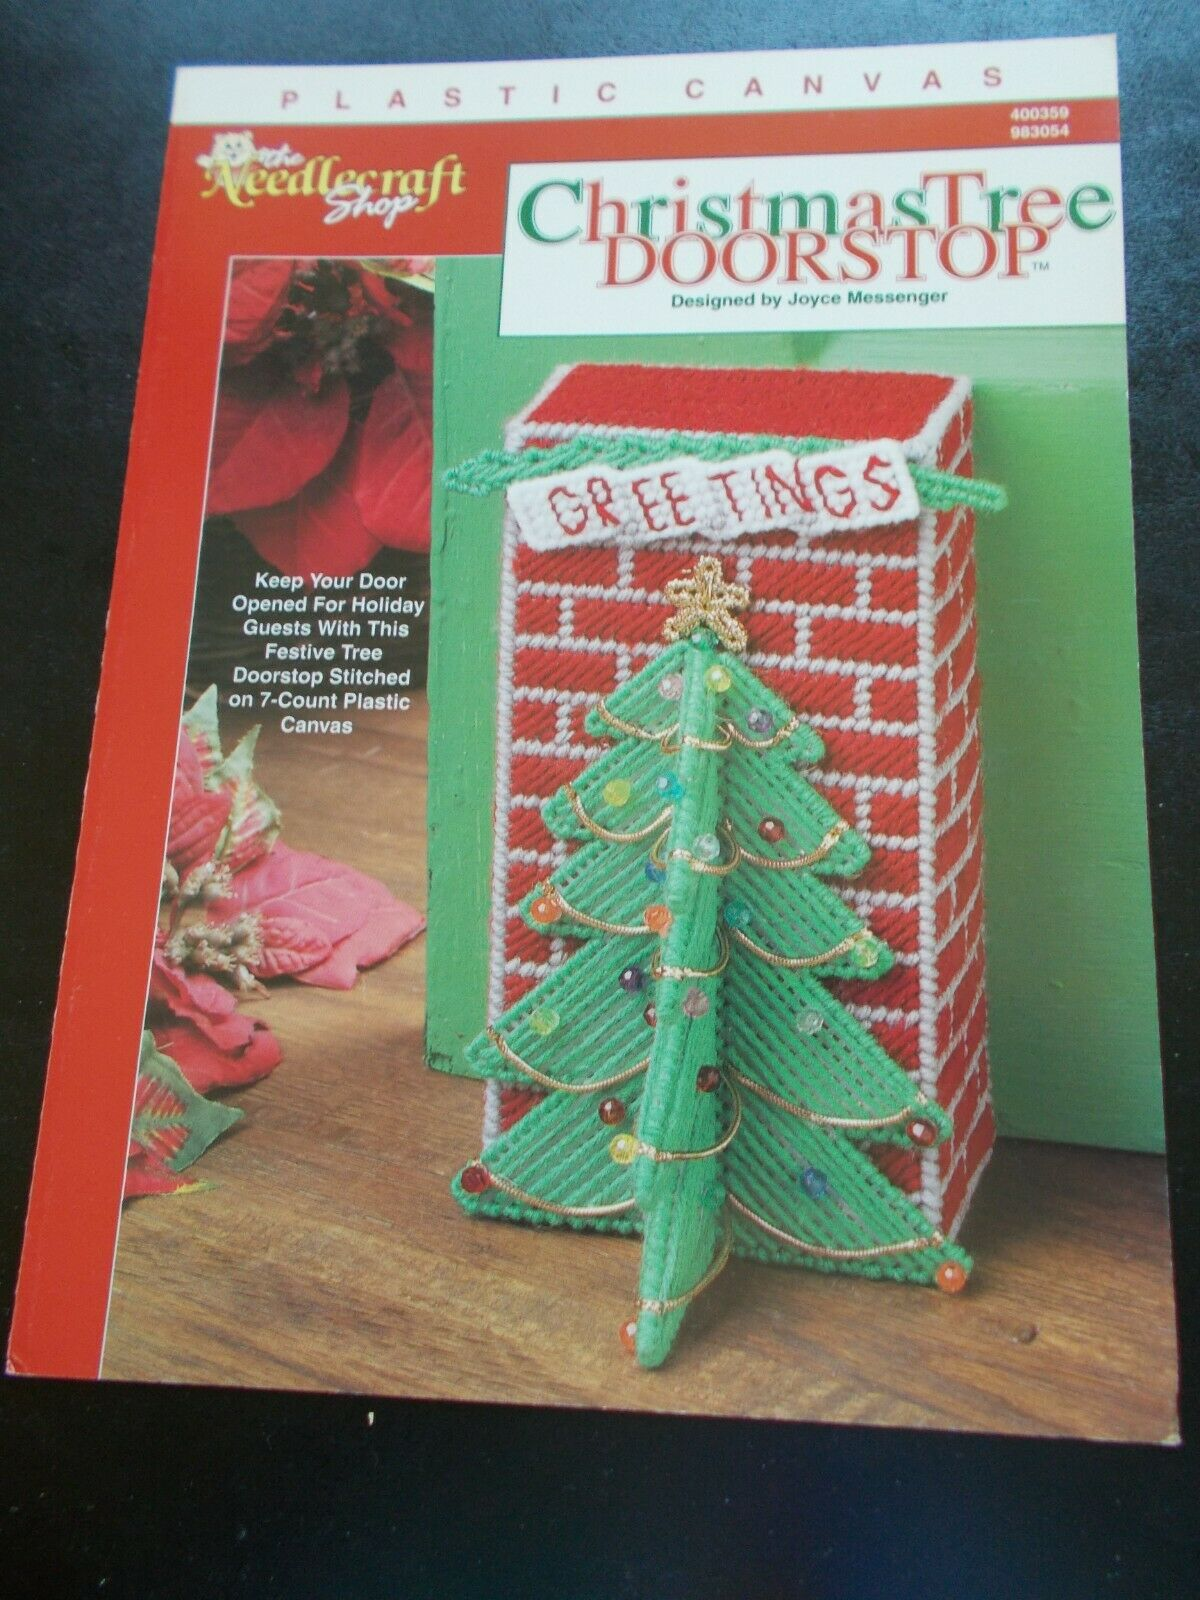 Christmas Trees for Sale House Fence Sign Annie/'s Plastic Canvas Pattern Leaflet